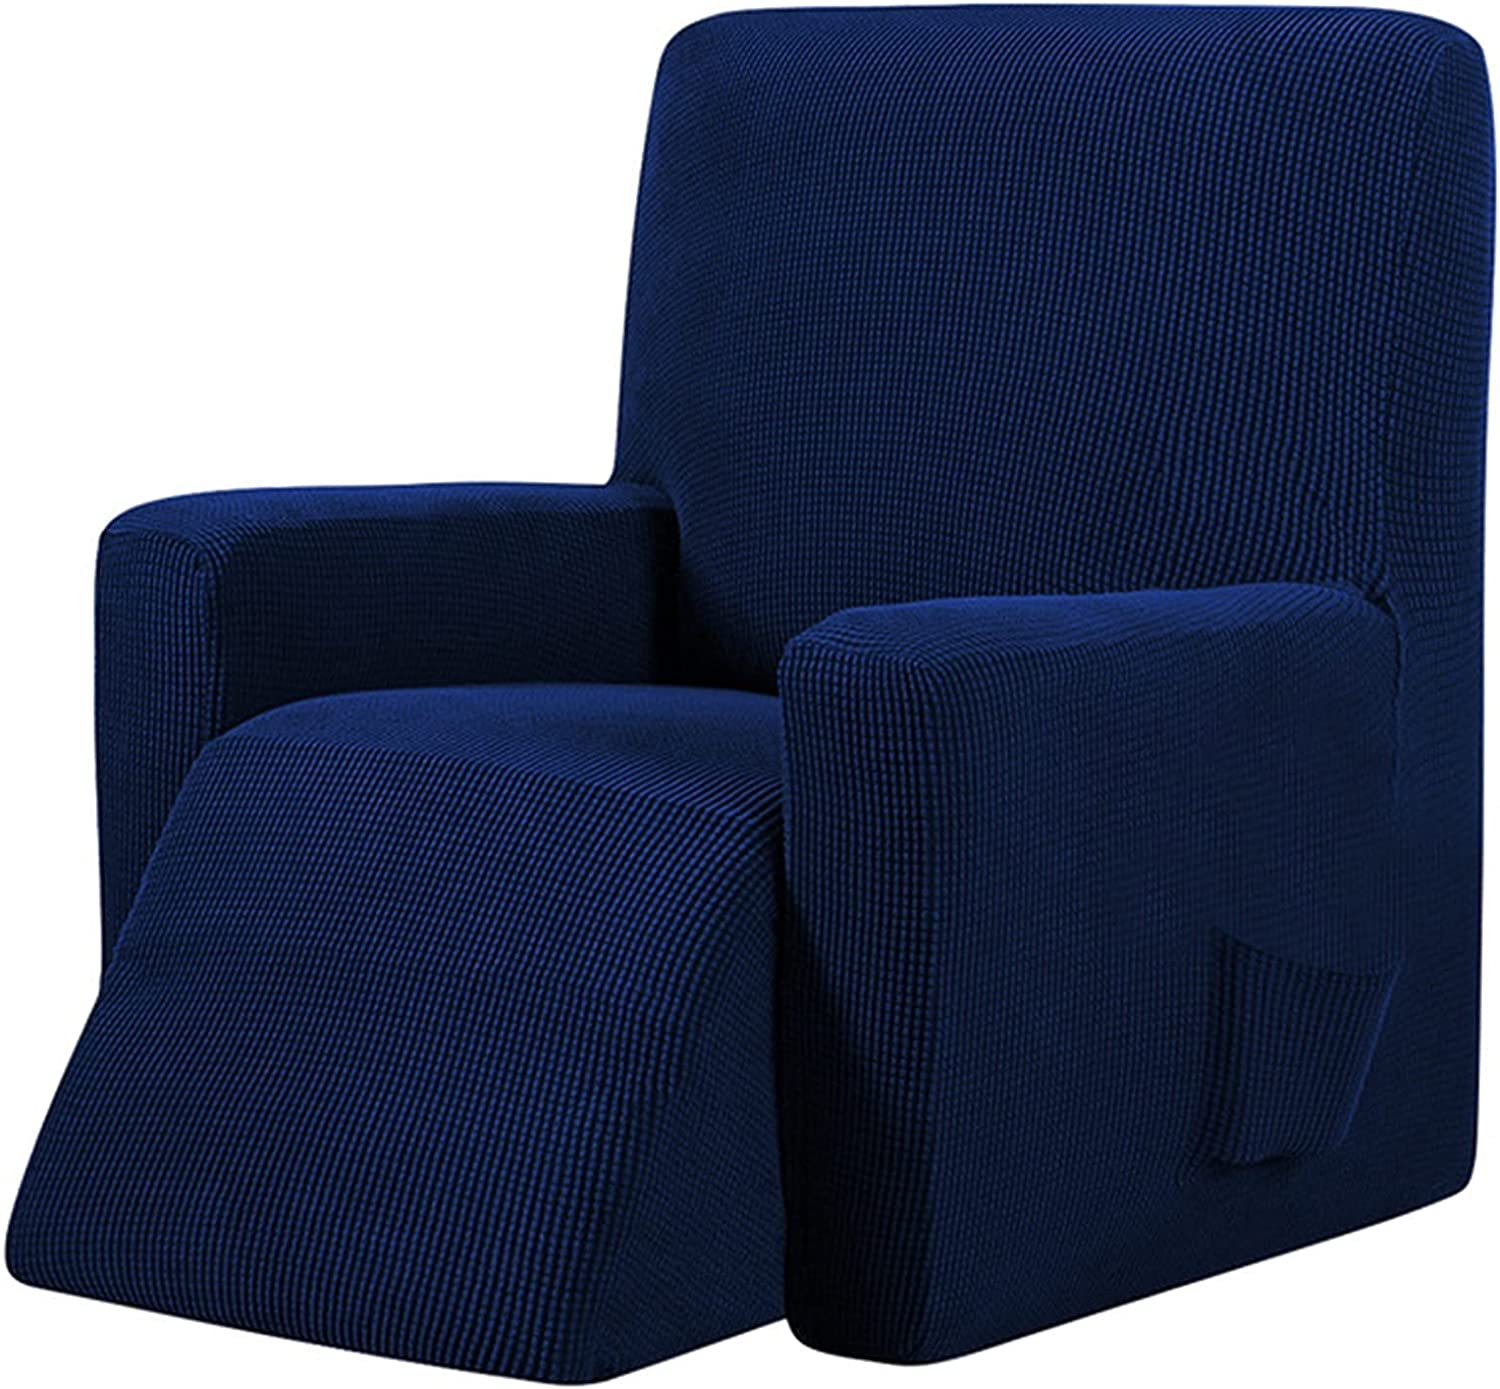 Mimosapud quality assurance Waterproof Elastic Recliner OFFicial shop All-Inclusive Chair Cover